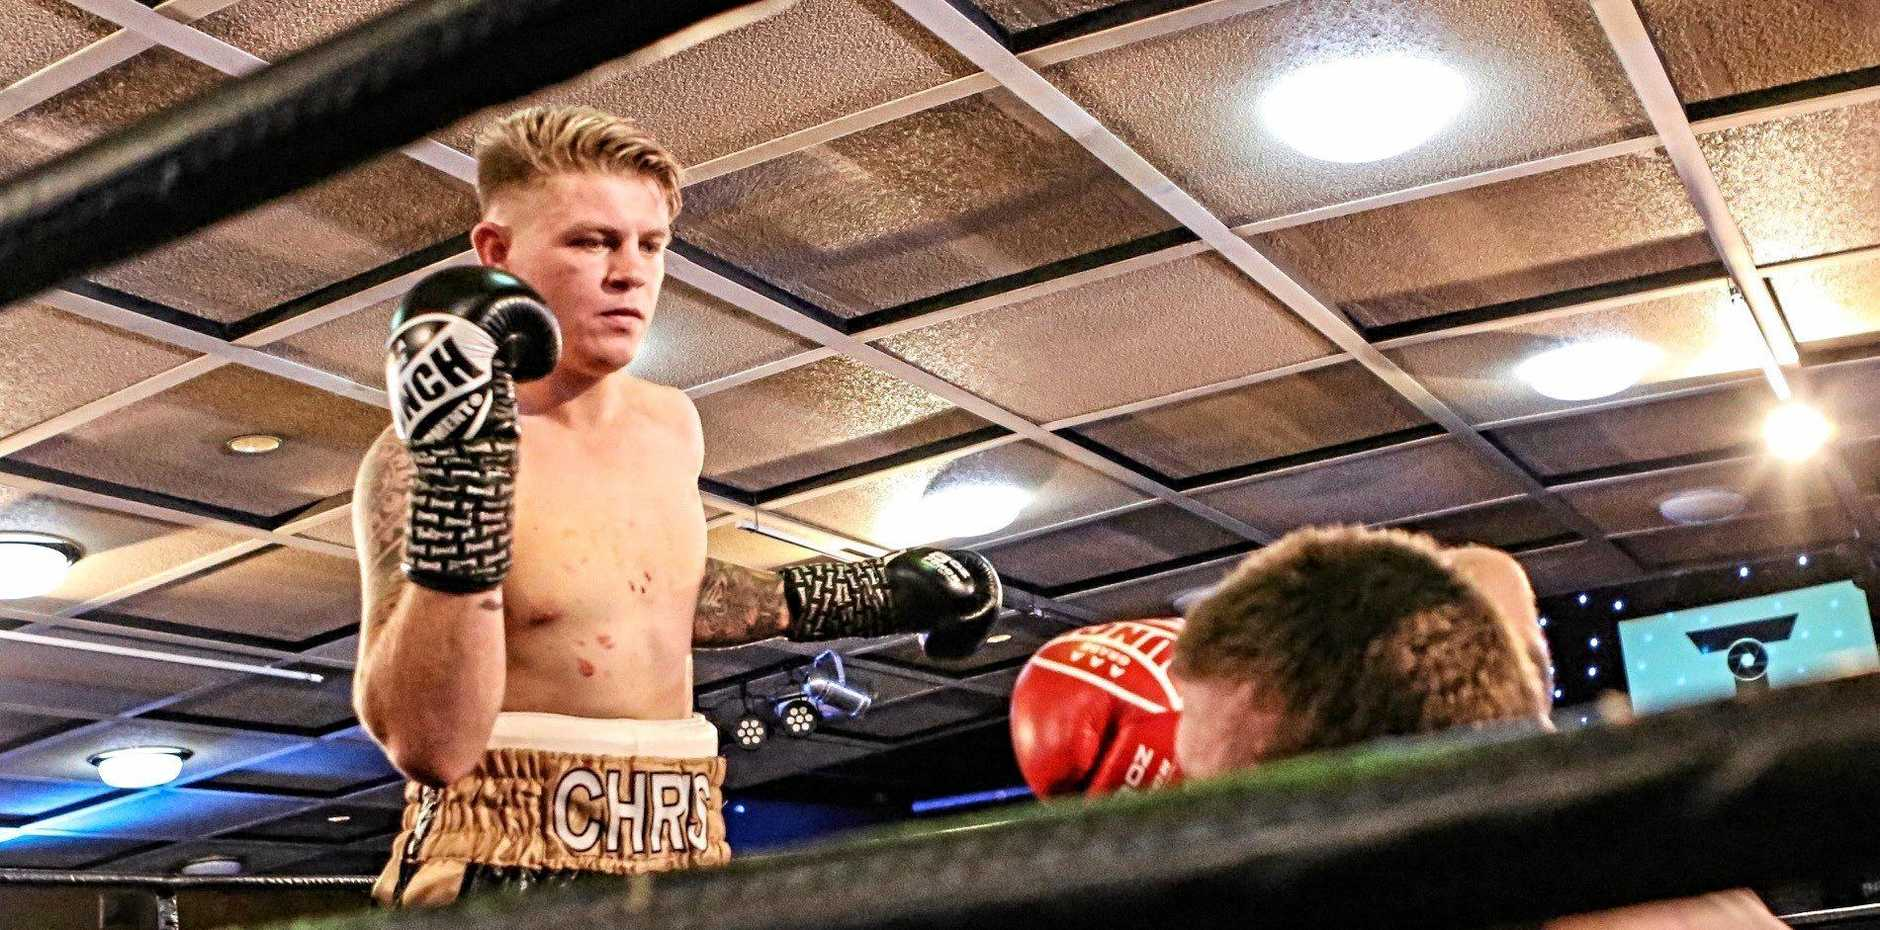 Chris Brackin on his way to another Rumours International win. He returns to the ring on March 9.